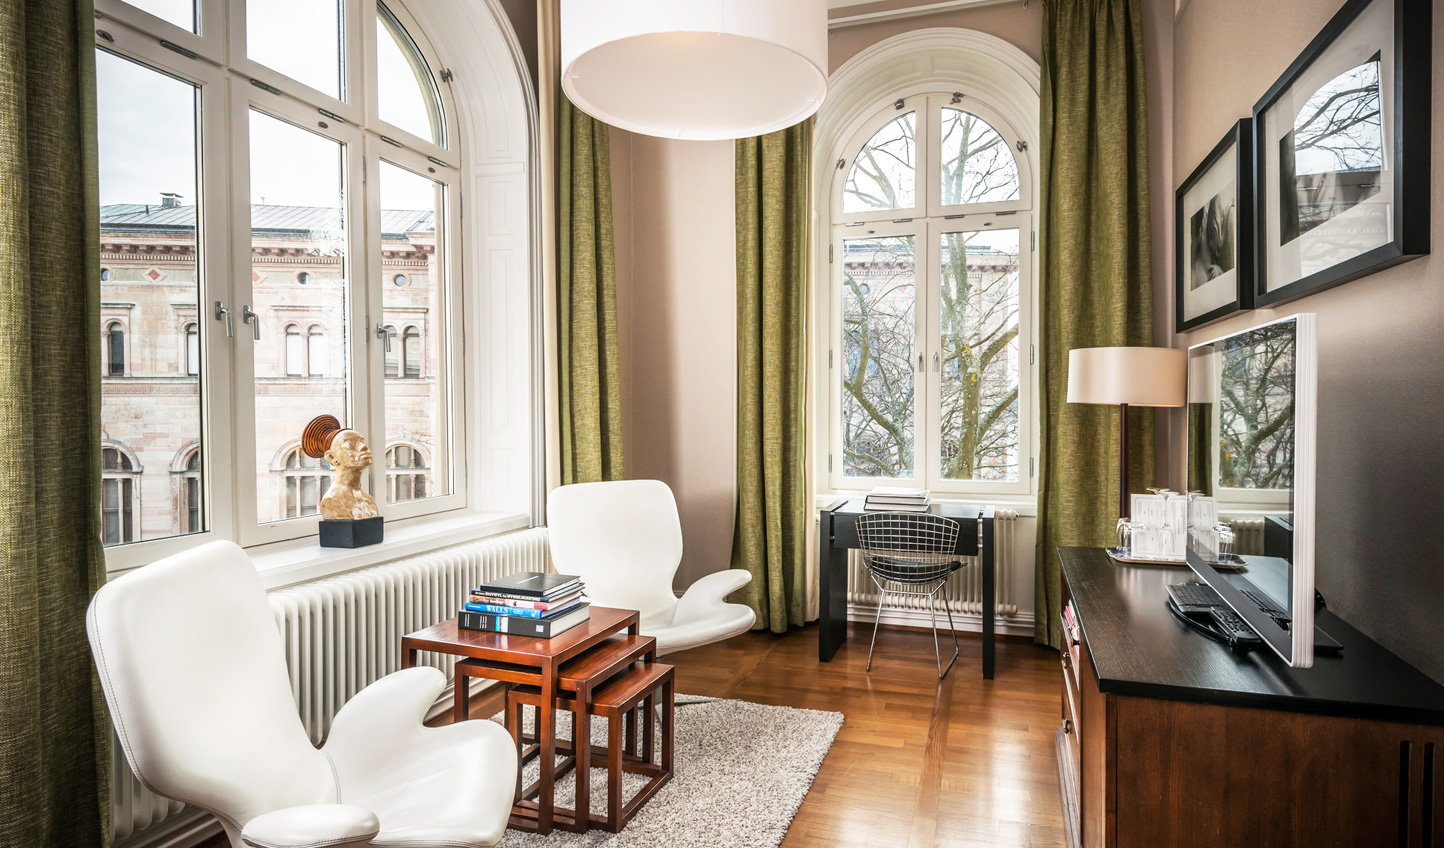 Large windows for admiring the views of Stockholm